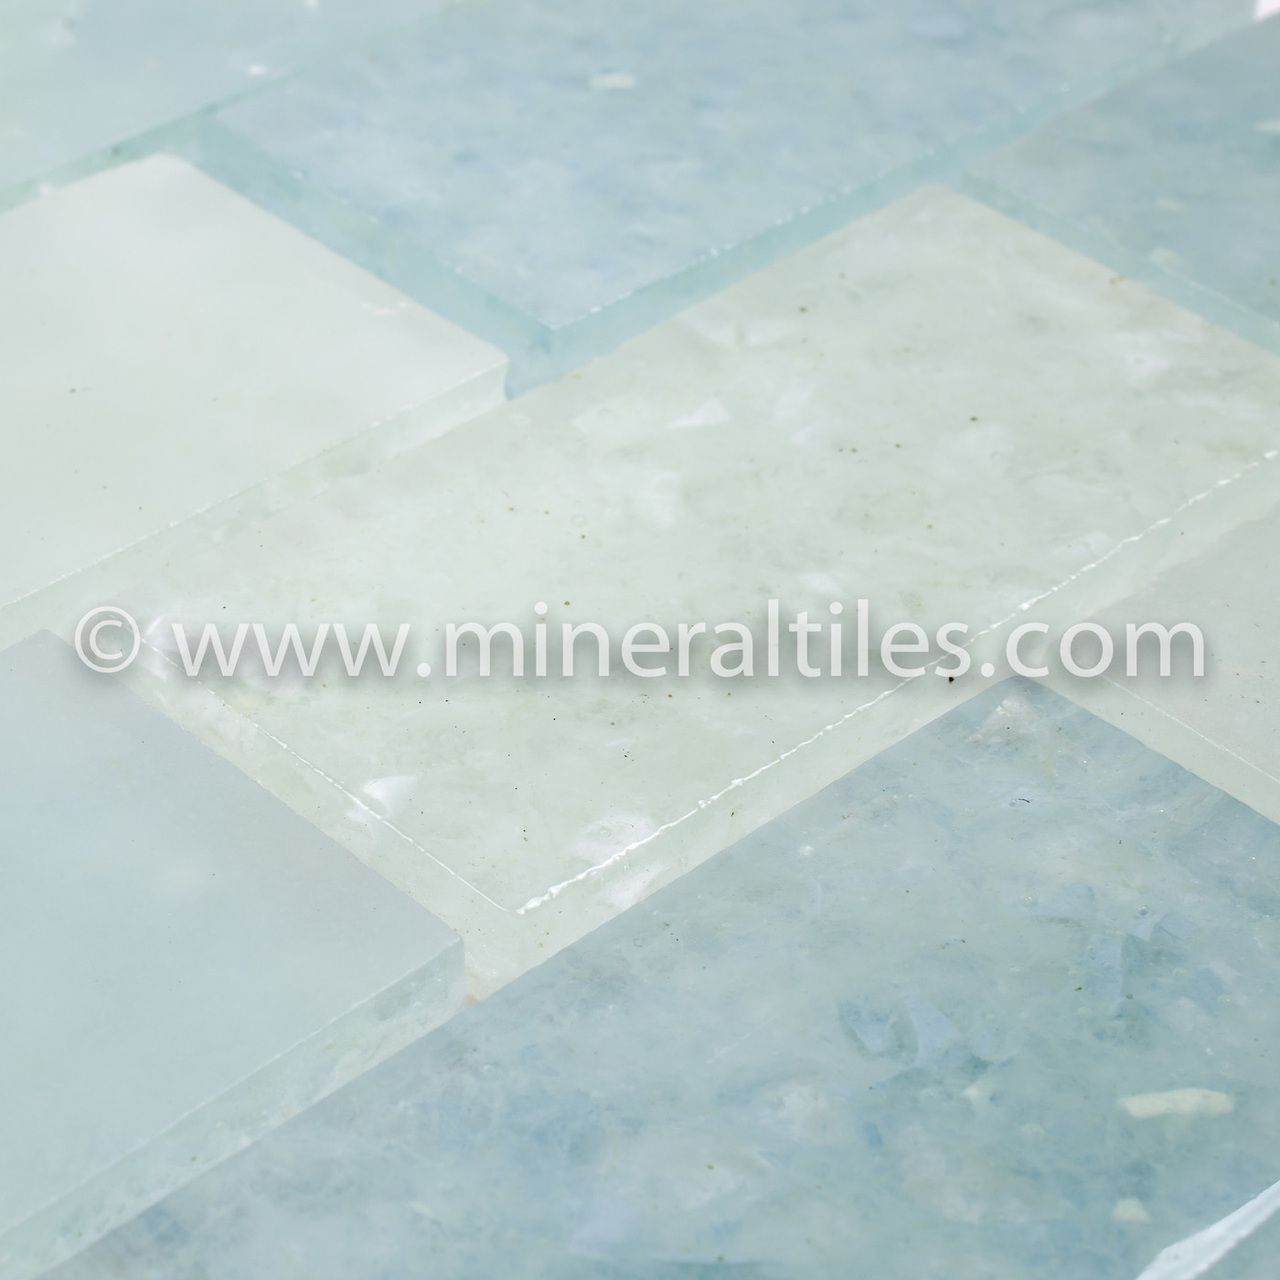 Mineral Tiles - Fluid Recycled Glass Tile Bahamas Subway Blend ...